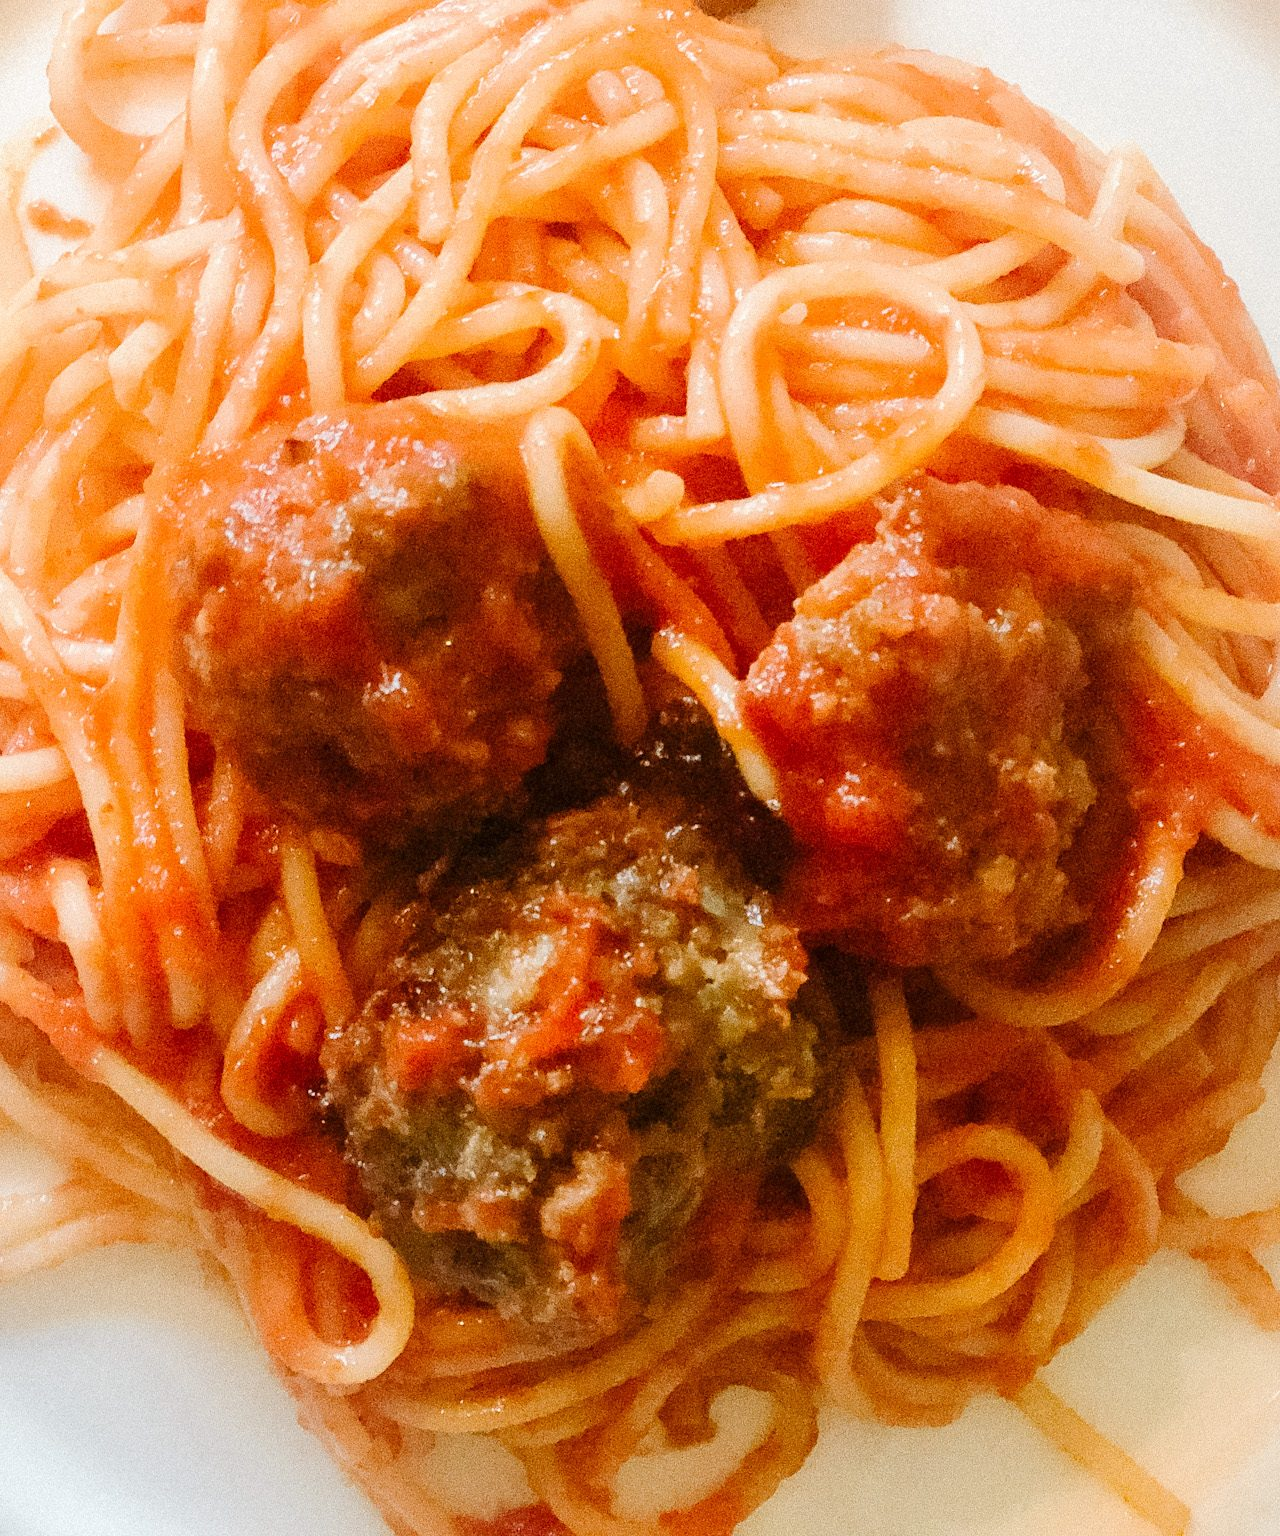 Homemade beef meatballs sitting on top of spaghetti